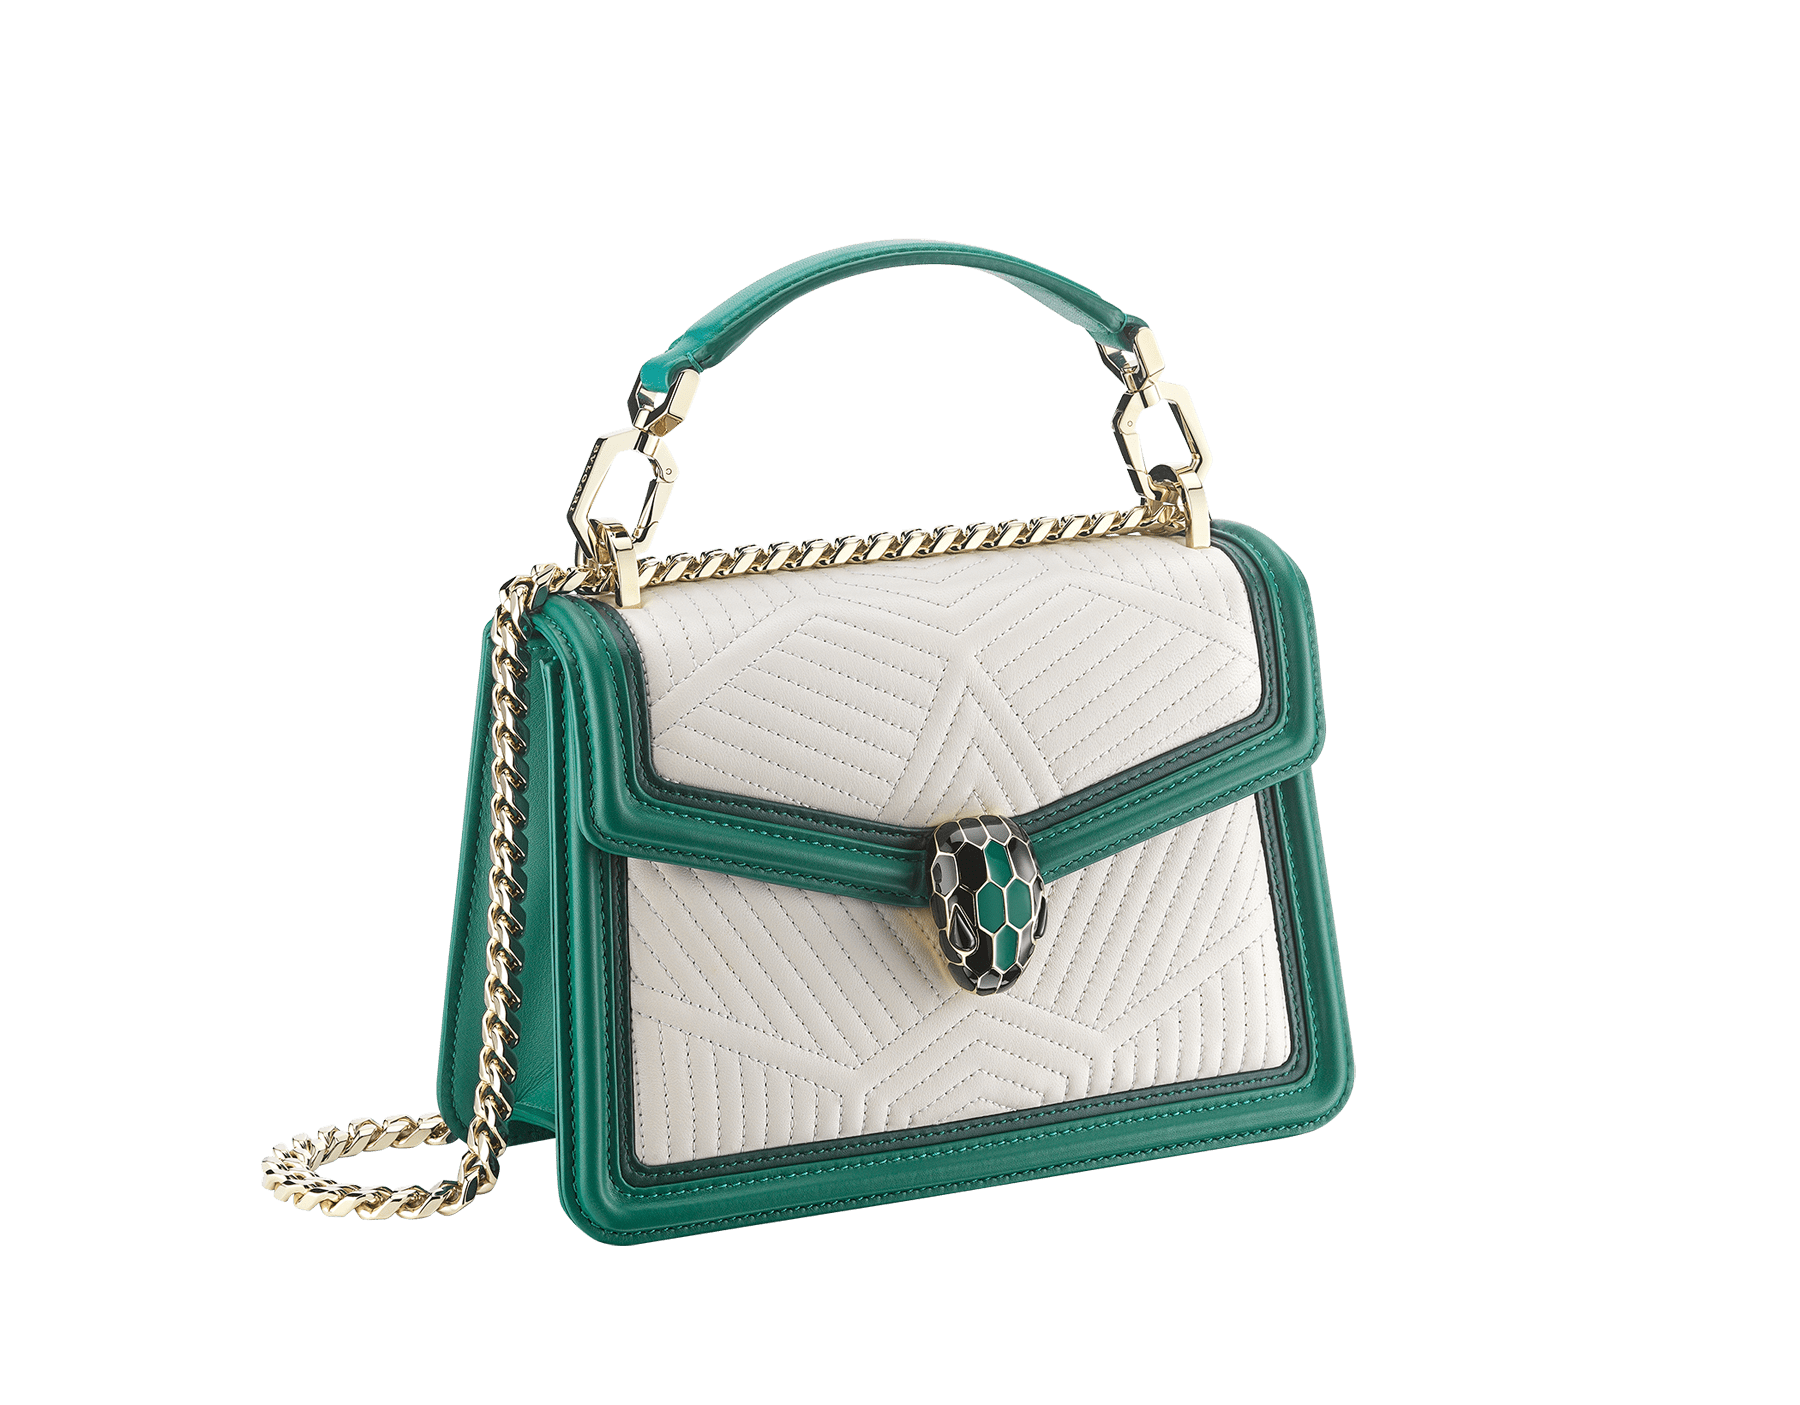 """""""Serpenti Diamond Blast"""" top handle bag in mimetic jade quilted nappa leather and mimetic jade smooth calf leather frames. Iconic snakehead closure in light gold plated brass enriched with matte black and shiny mimetic jade enamel and black onyx eyes. 1063-FQDb image 2"""